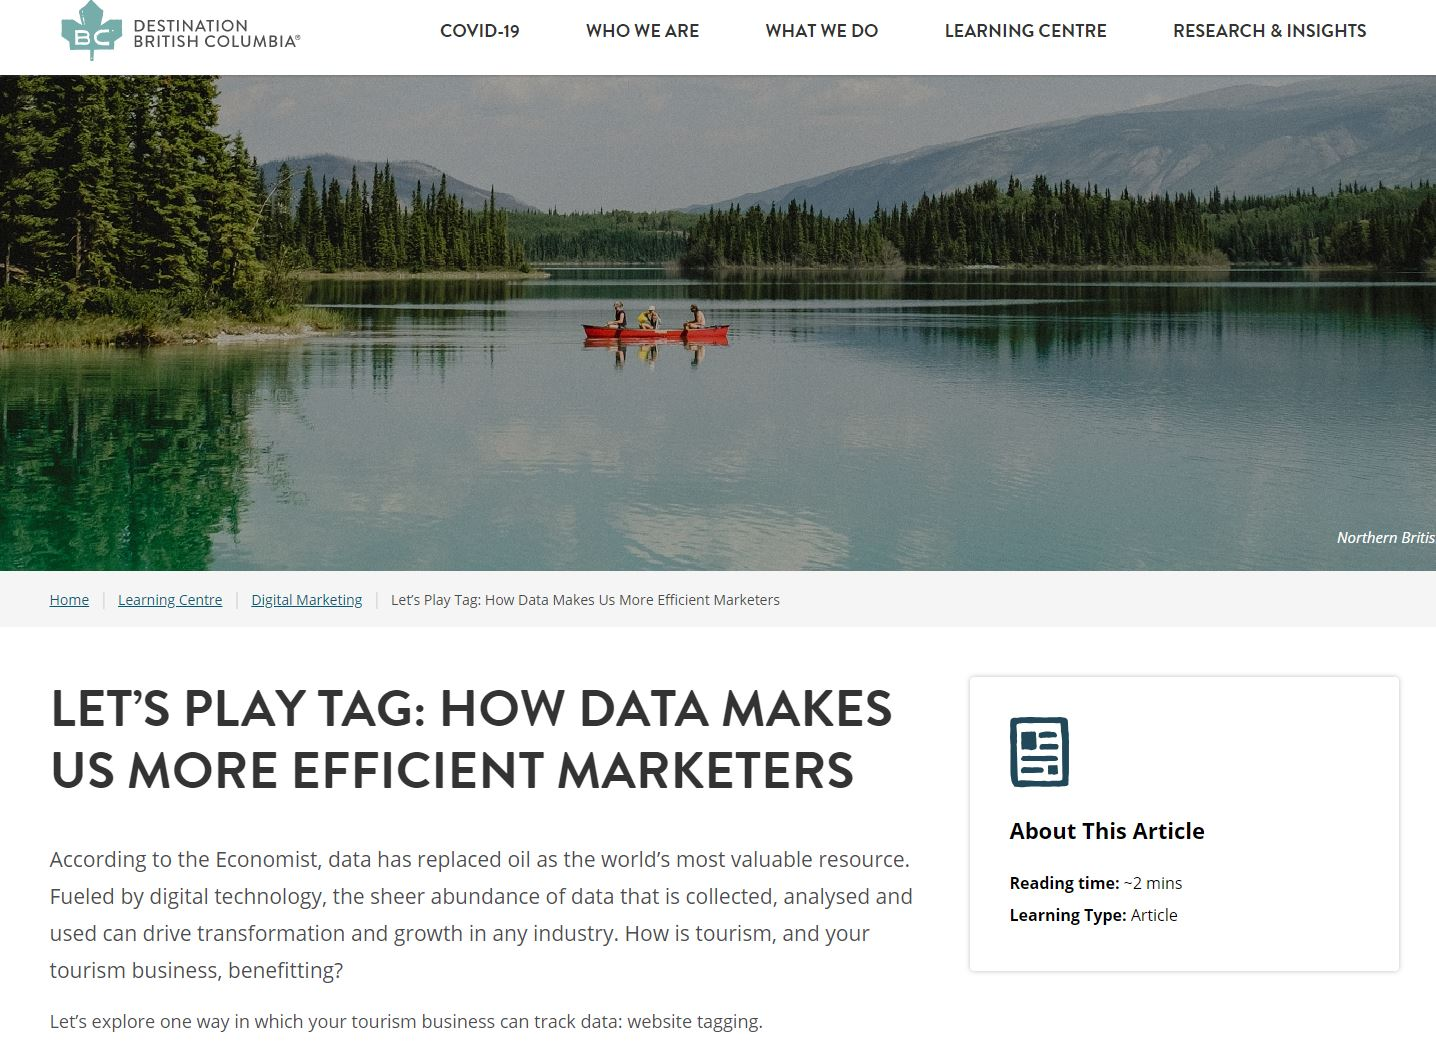 Let's Play Tag: How Data Makes Us More Efficient Marketers